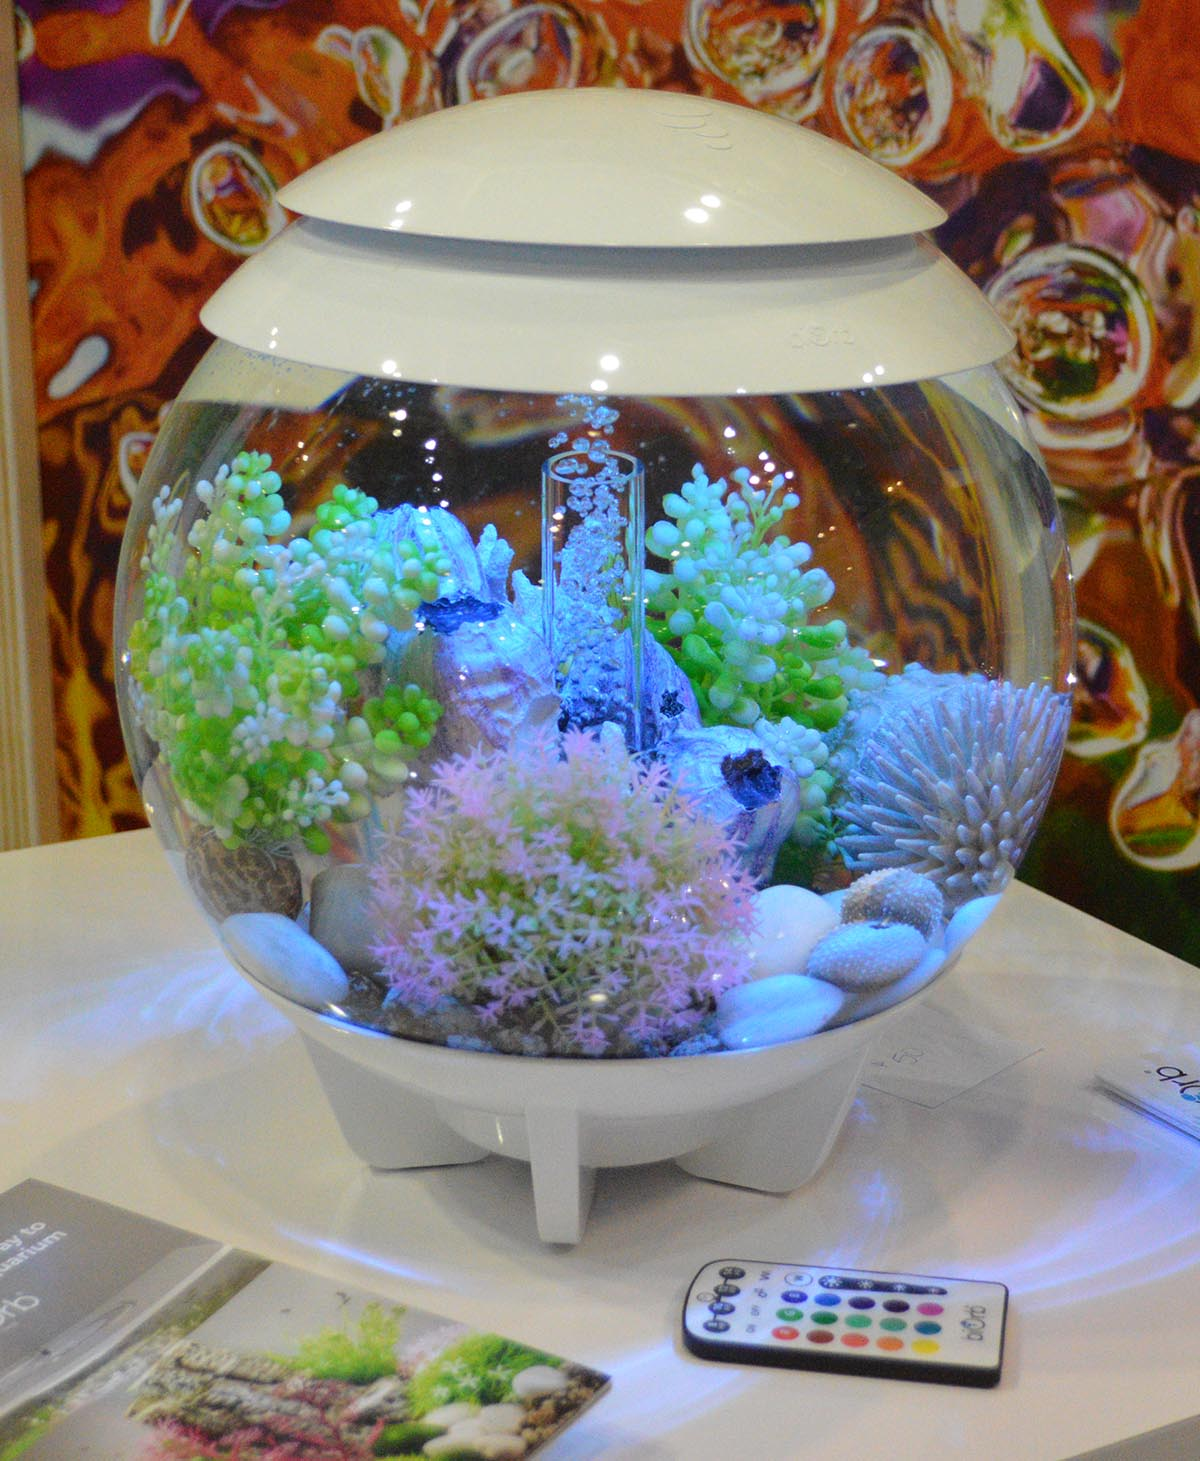 This biOrb HALO also shares a marine theme; one could argue that while such aquariums are not well suited for reef tank use (e.g. built-in lighting might not be sufficient), in the right hands a small aquarium like this might make the ideal home for a small herd of Dwarf Seahorses (Hippocampus zosterae), one of the few fish that may actually do best in a smaller, contained space (with appropriate live feeds and routine husbandry).